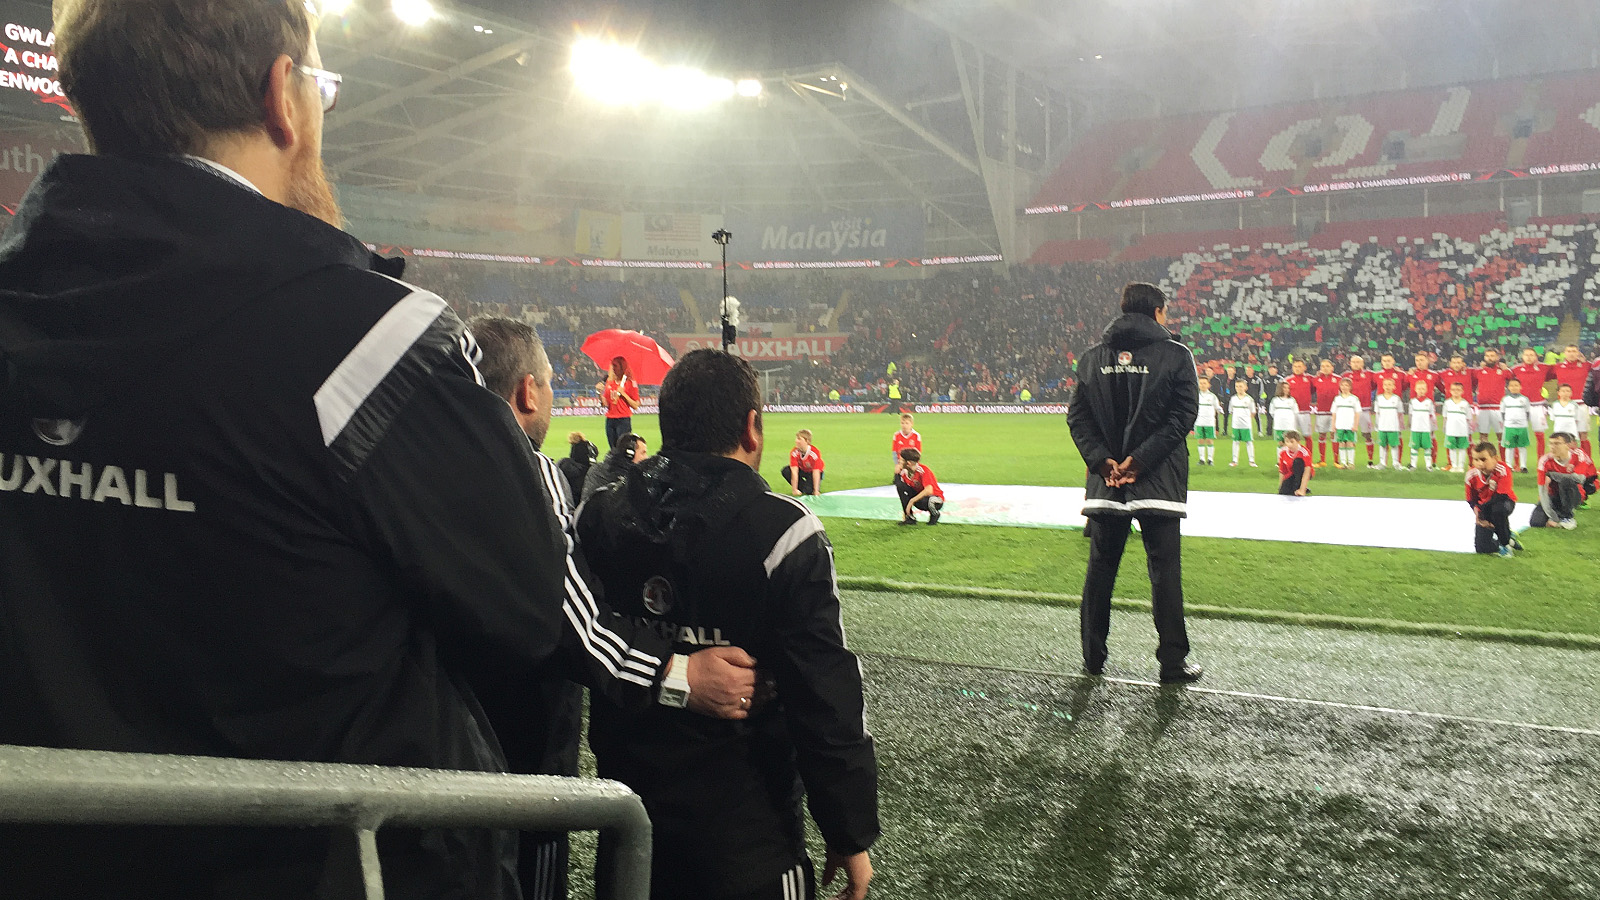 Wales vs Northern Ireland 360 Video captured at Cardiff City Stadium